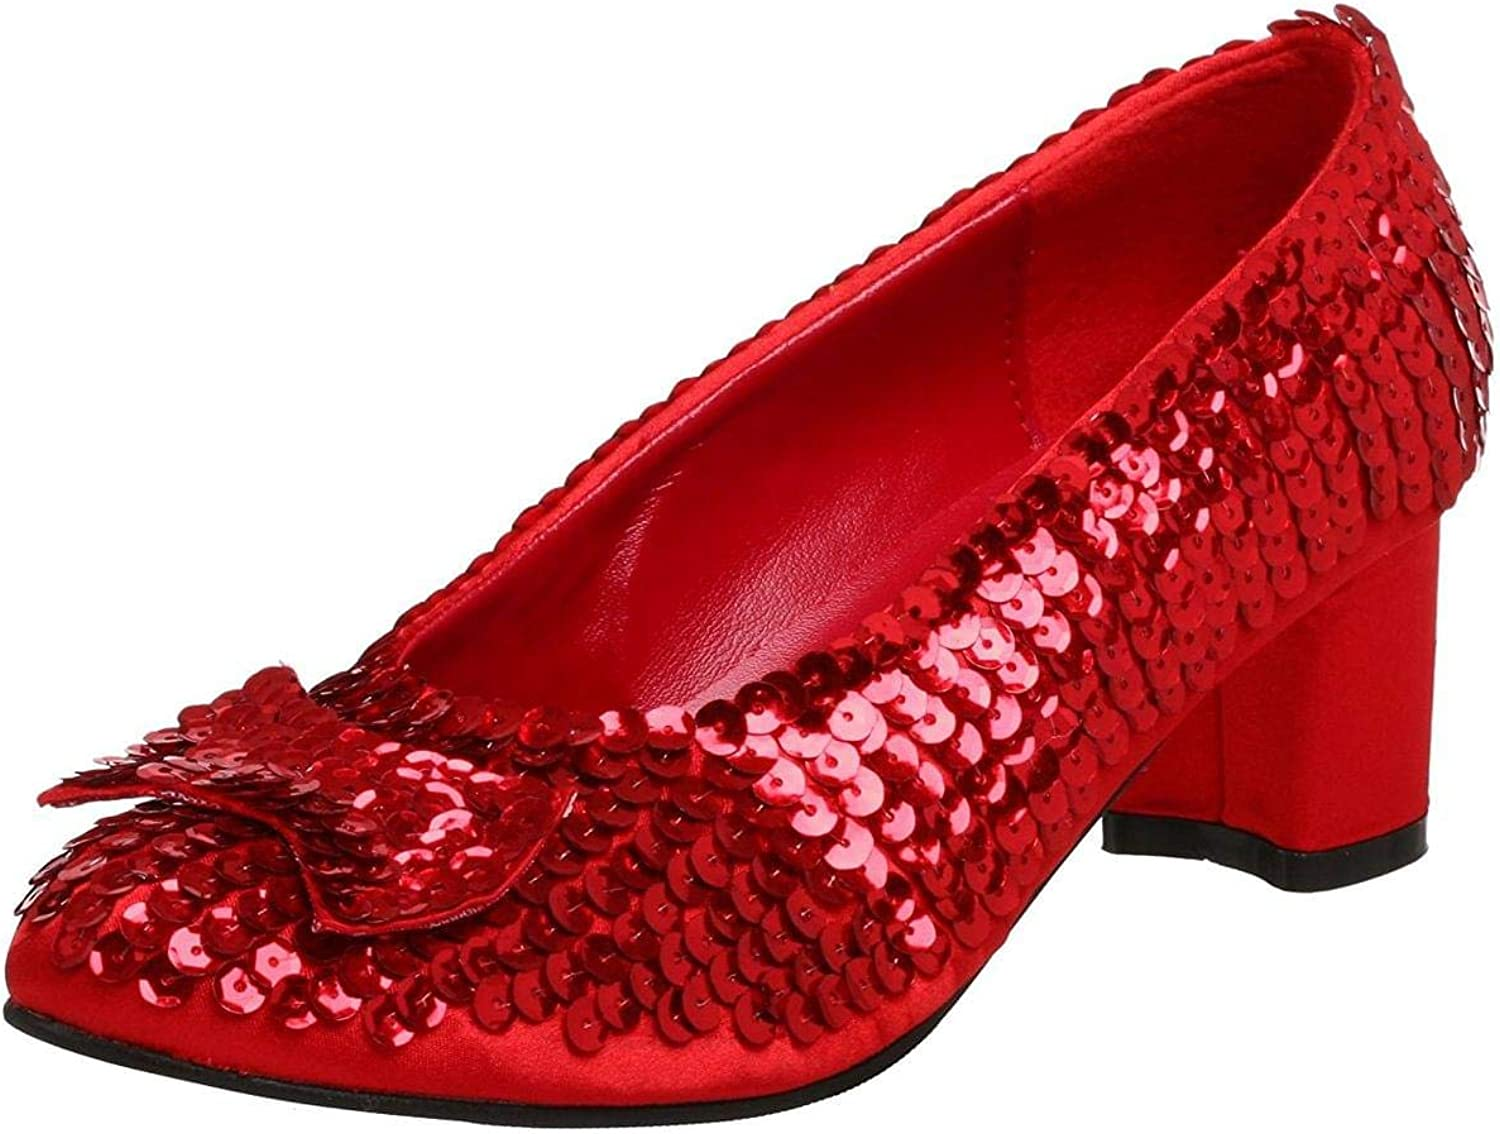 Funtasma by Pleaser Women's Pump Red Sequins Size -8